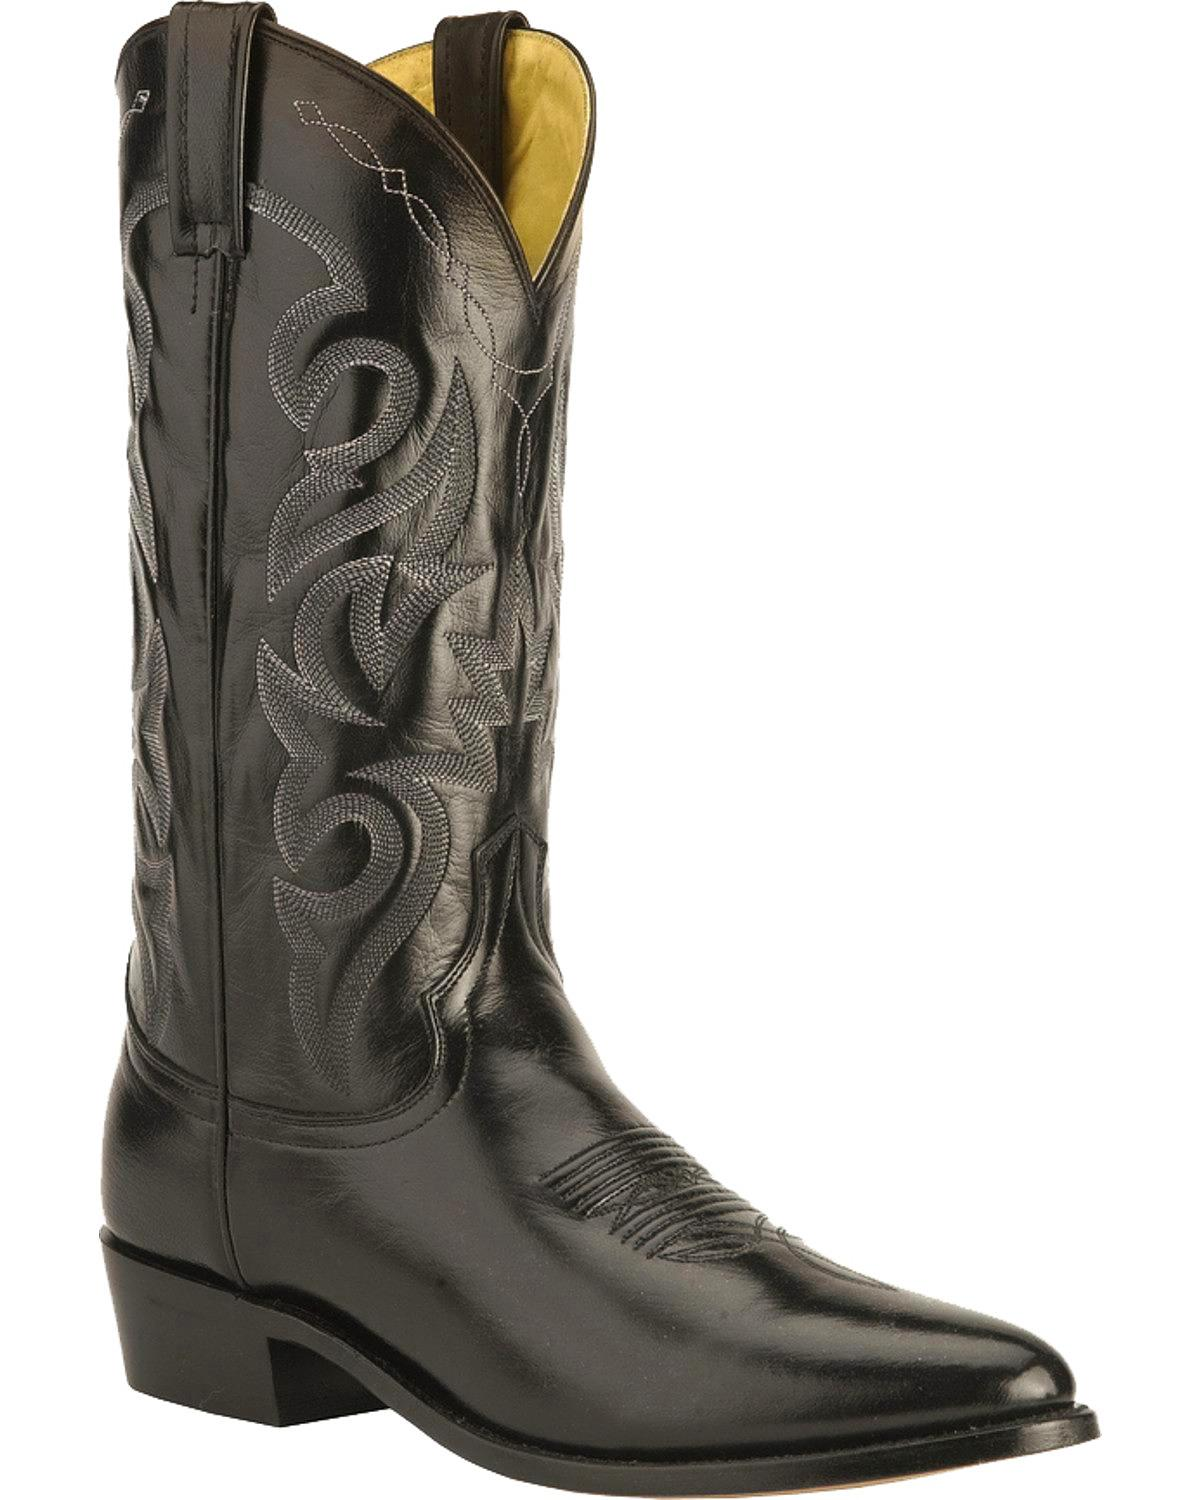 Sheplers is the world's leading provider of boots, apparel, and accessories for the country western lifestyle.